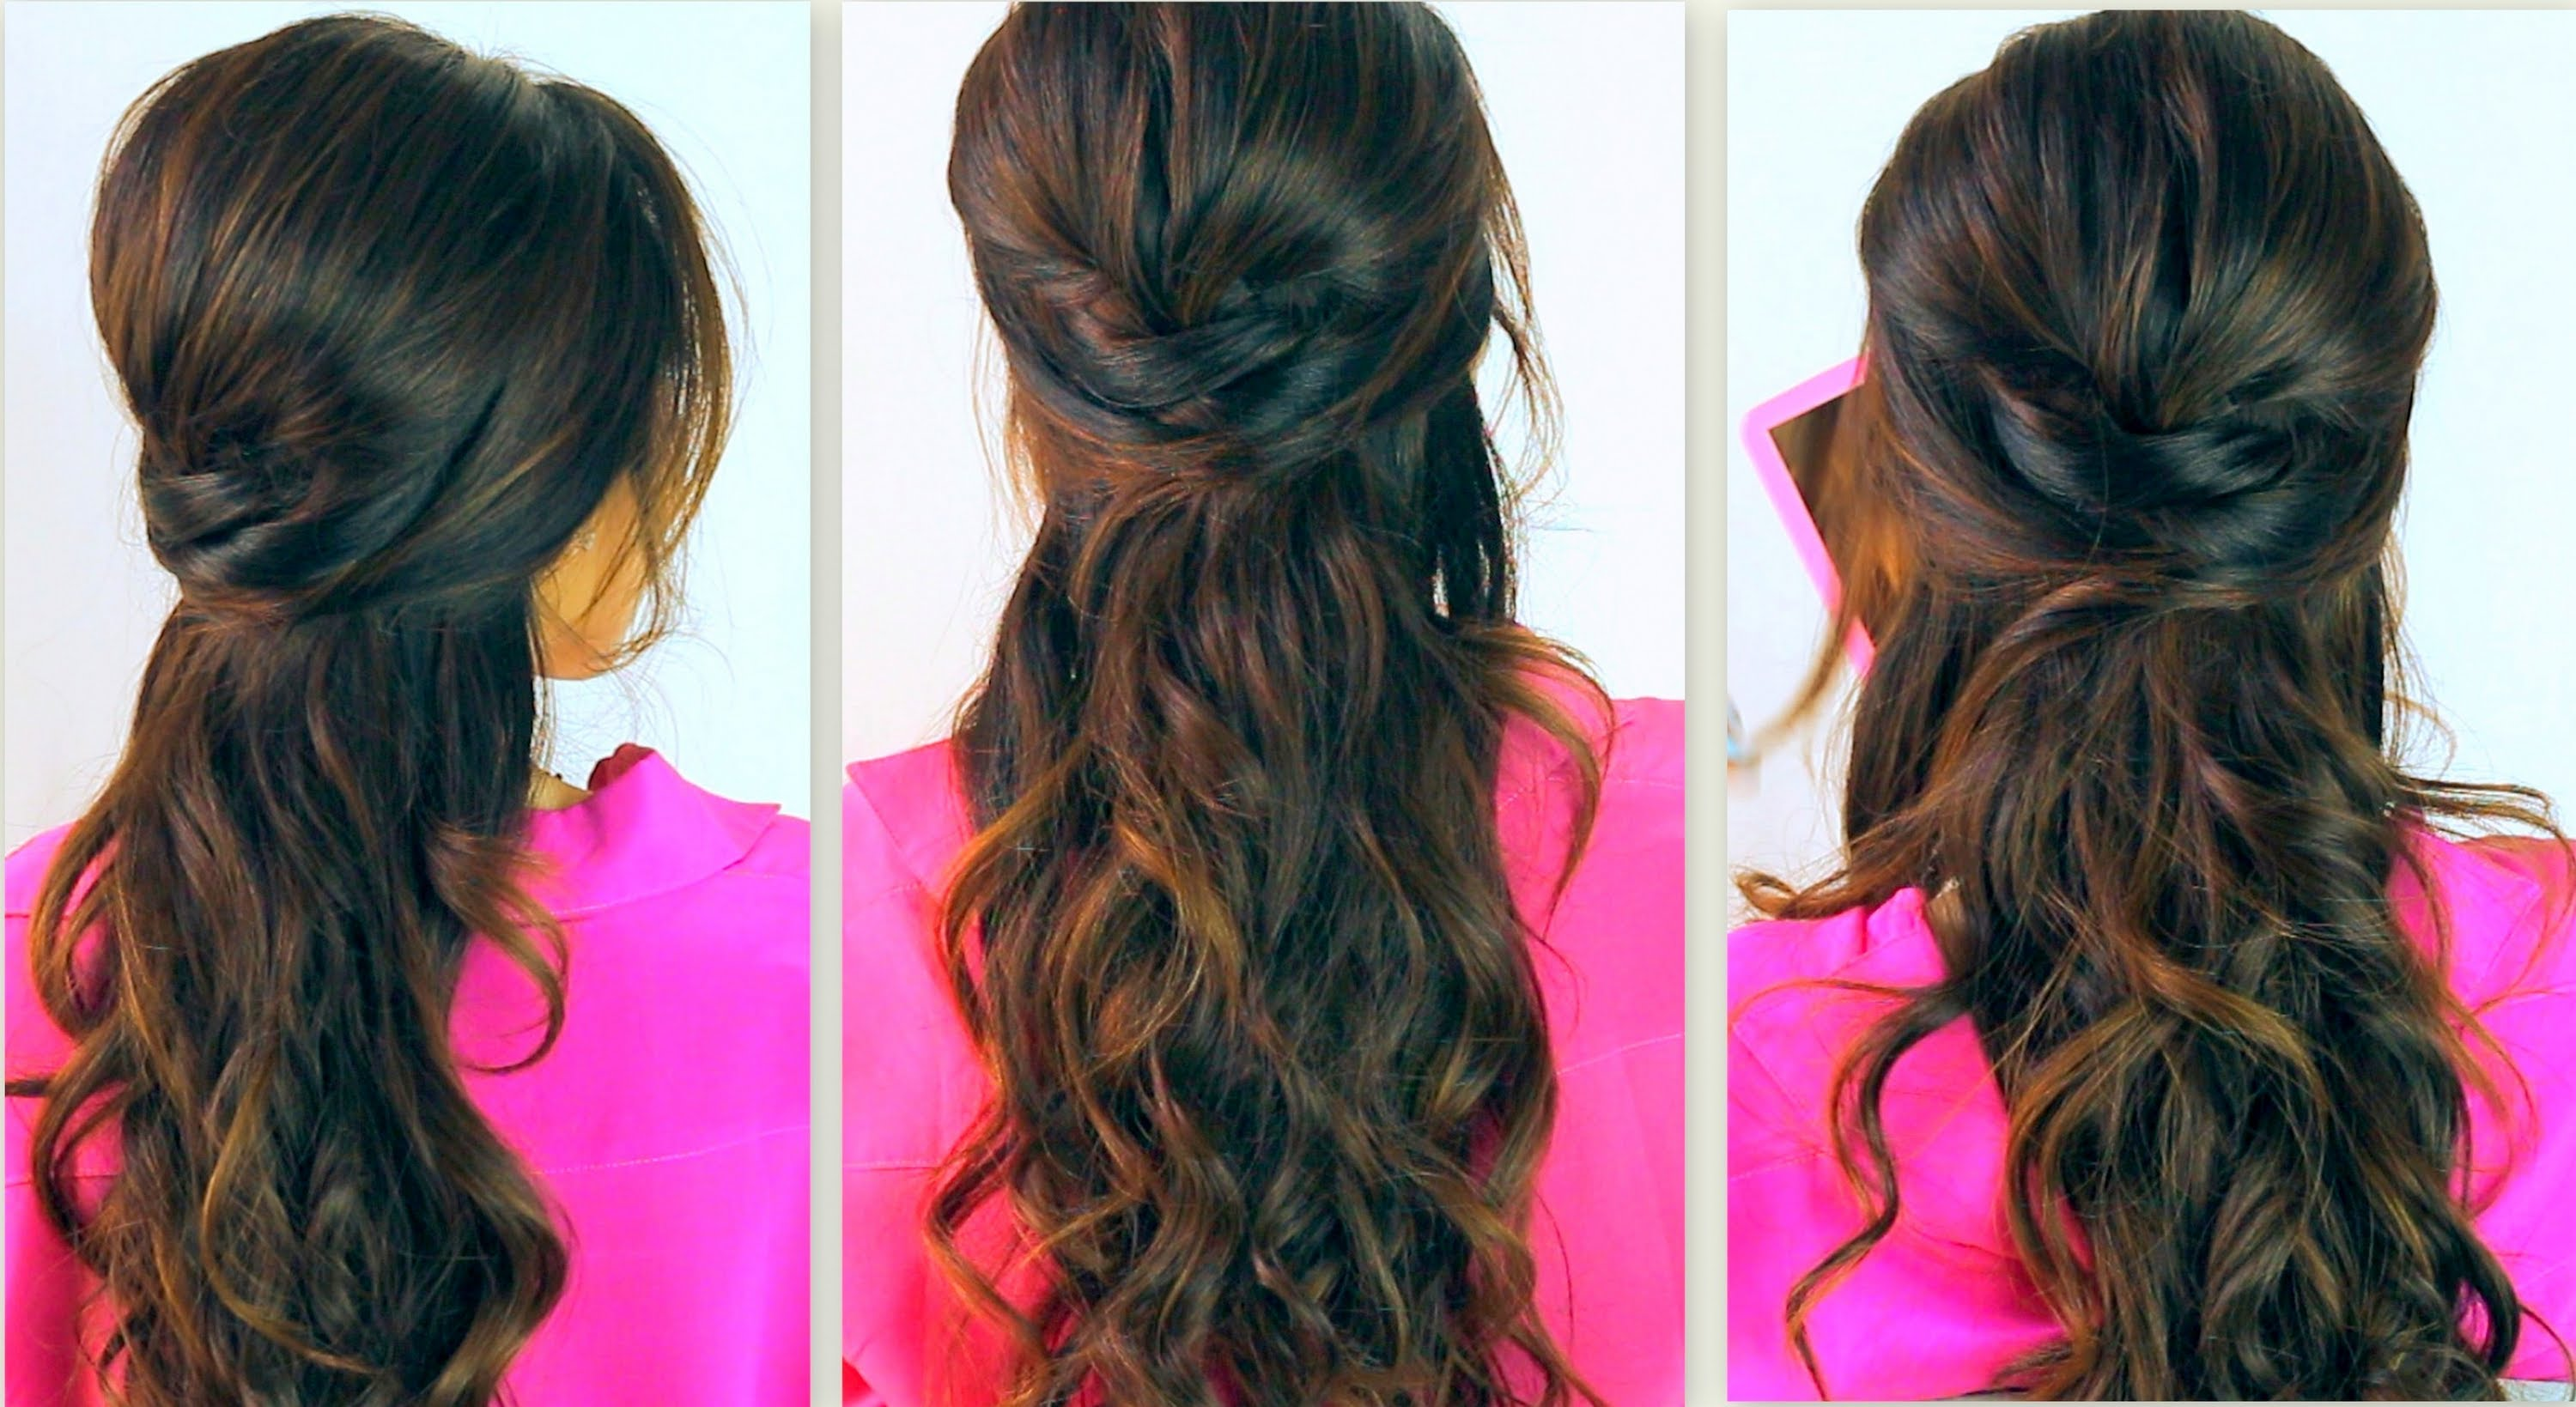 HAIRSTYLES | EVERYDAY POOFY CURLY HALF-UP UPDOS FOR MEDIUM LONG HAIR